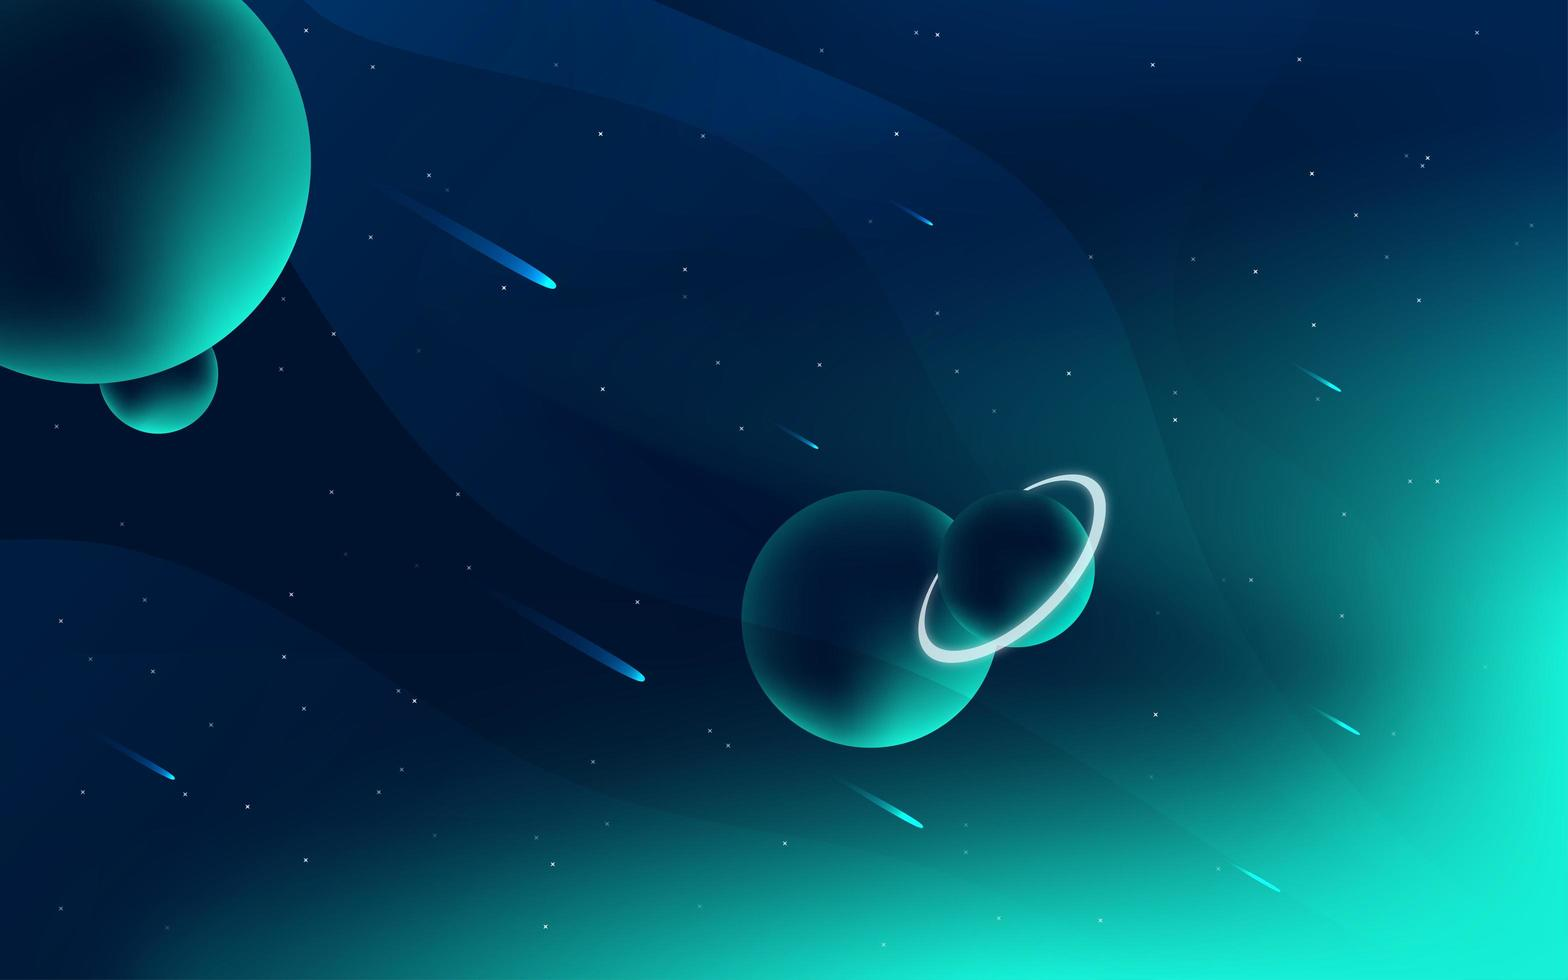 Bright space and planets design vector